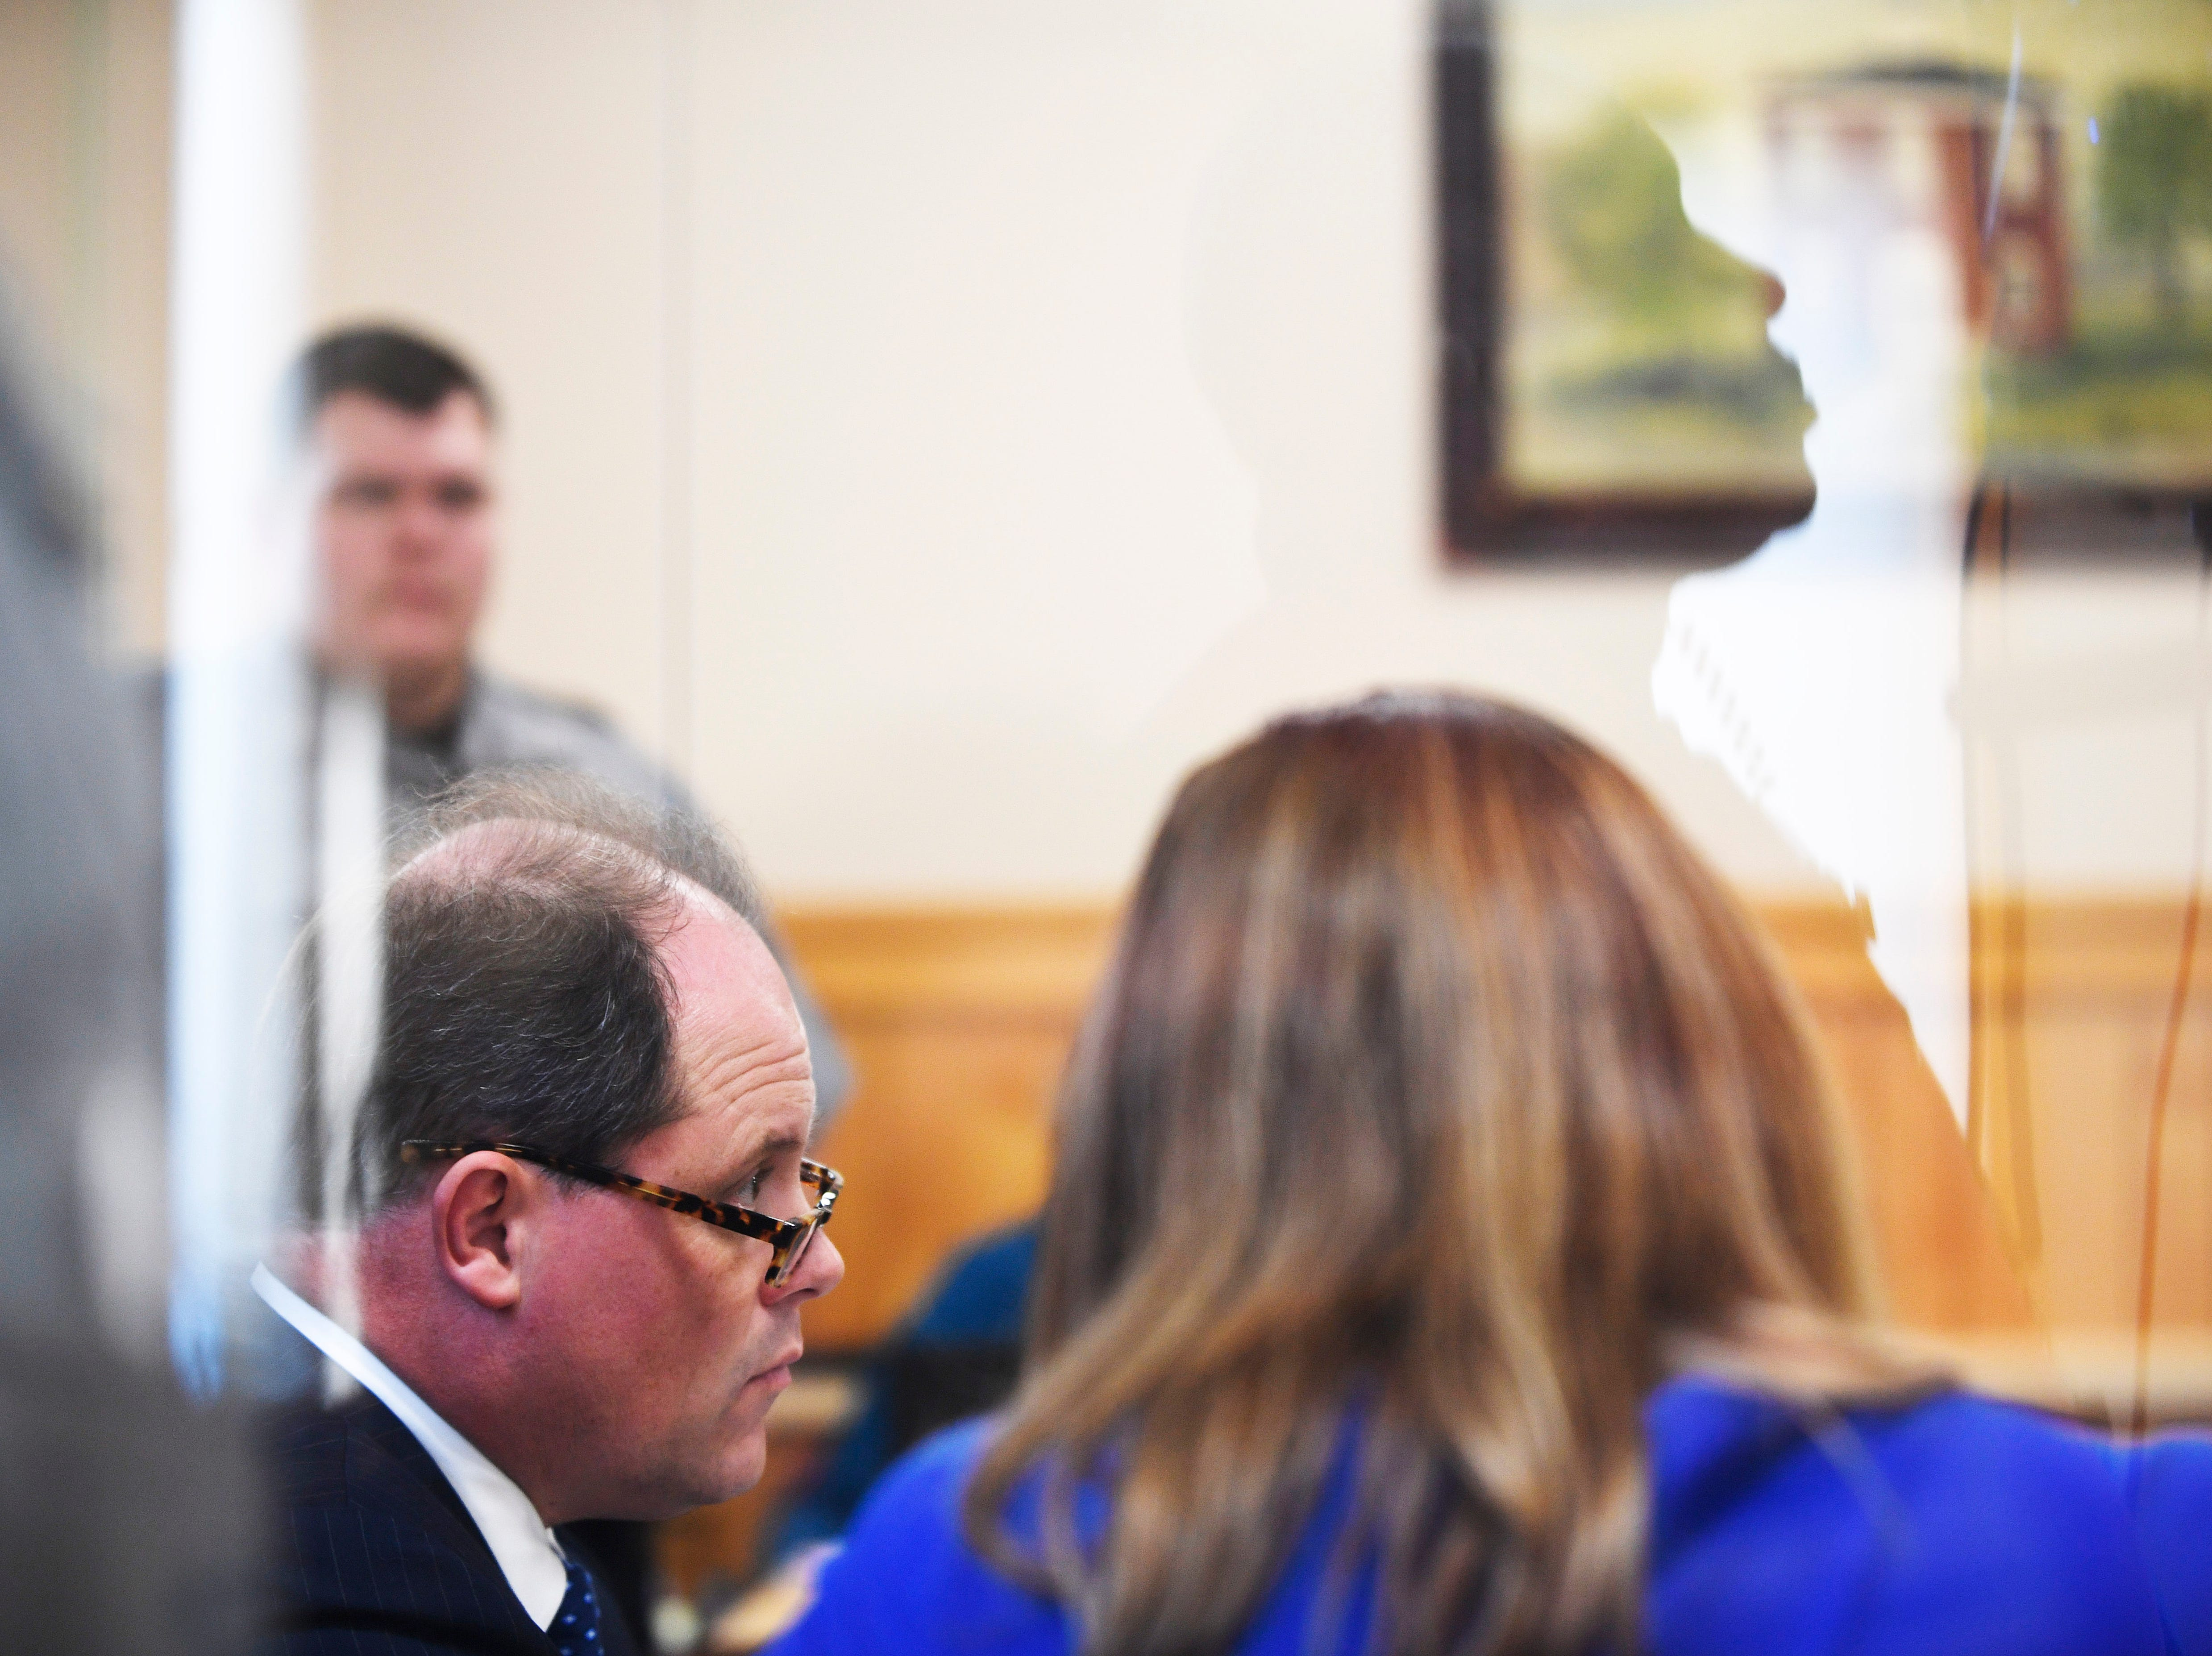 Defense attorney Tim Potter defends Kirby Wallace, 53, during the preliminary hearing for charges including the killing of Indian Mound resident Brenda Smith at the Stewart County Courthouse Tuesday, Nov. 6, 2018, in Dover, Tenn. Wallace was caught Oct. 5 following a seven-day manhunt that expanded into Montgomery County.